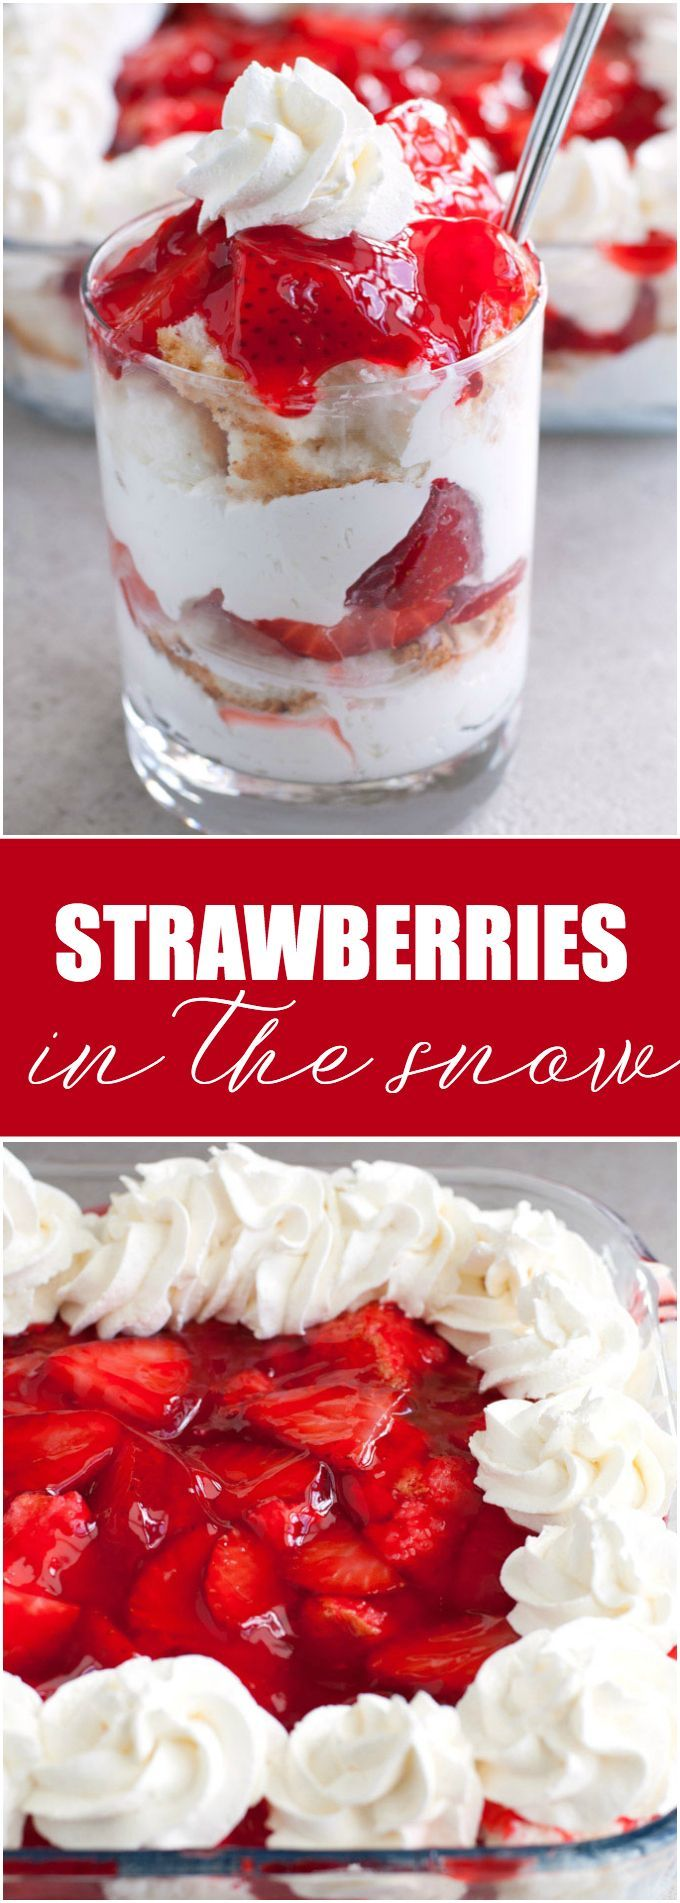 Strawberries in the Snow - Light angel food cake is layered on cream and covered in strawberries. A wonderful dessert to serve at a spring or summer gathering.